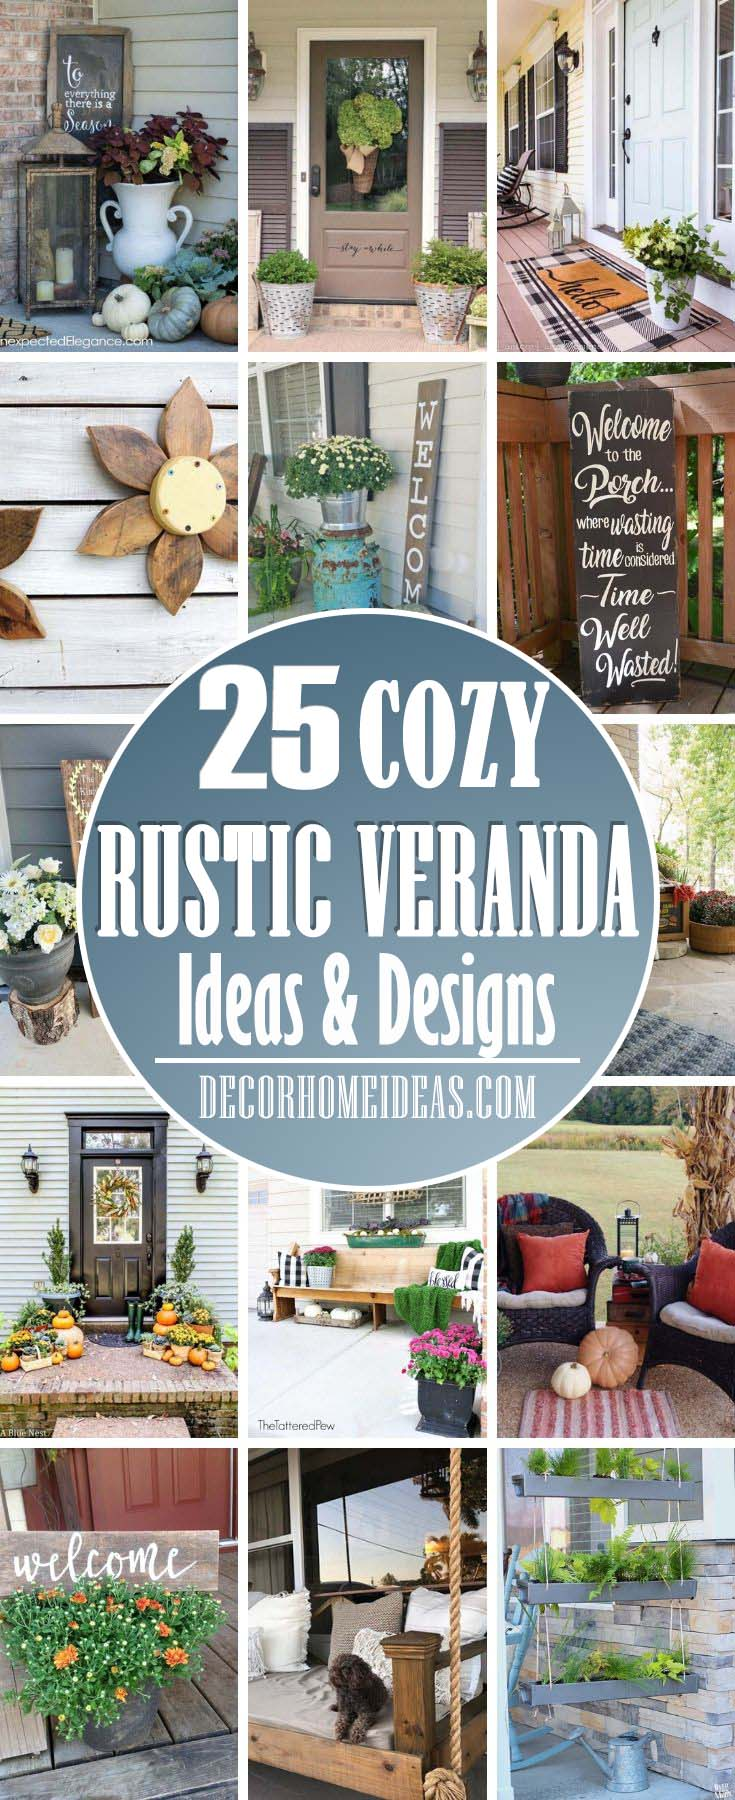 Best Rustic Veranda Decor Ideas. Decorate your veranda with these beautiful ideas and turn into a cozy and welcoming area. Add rustic and vintage decorations. #veranda #decor #rustic #decorhomeideas